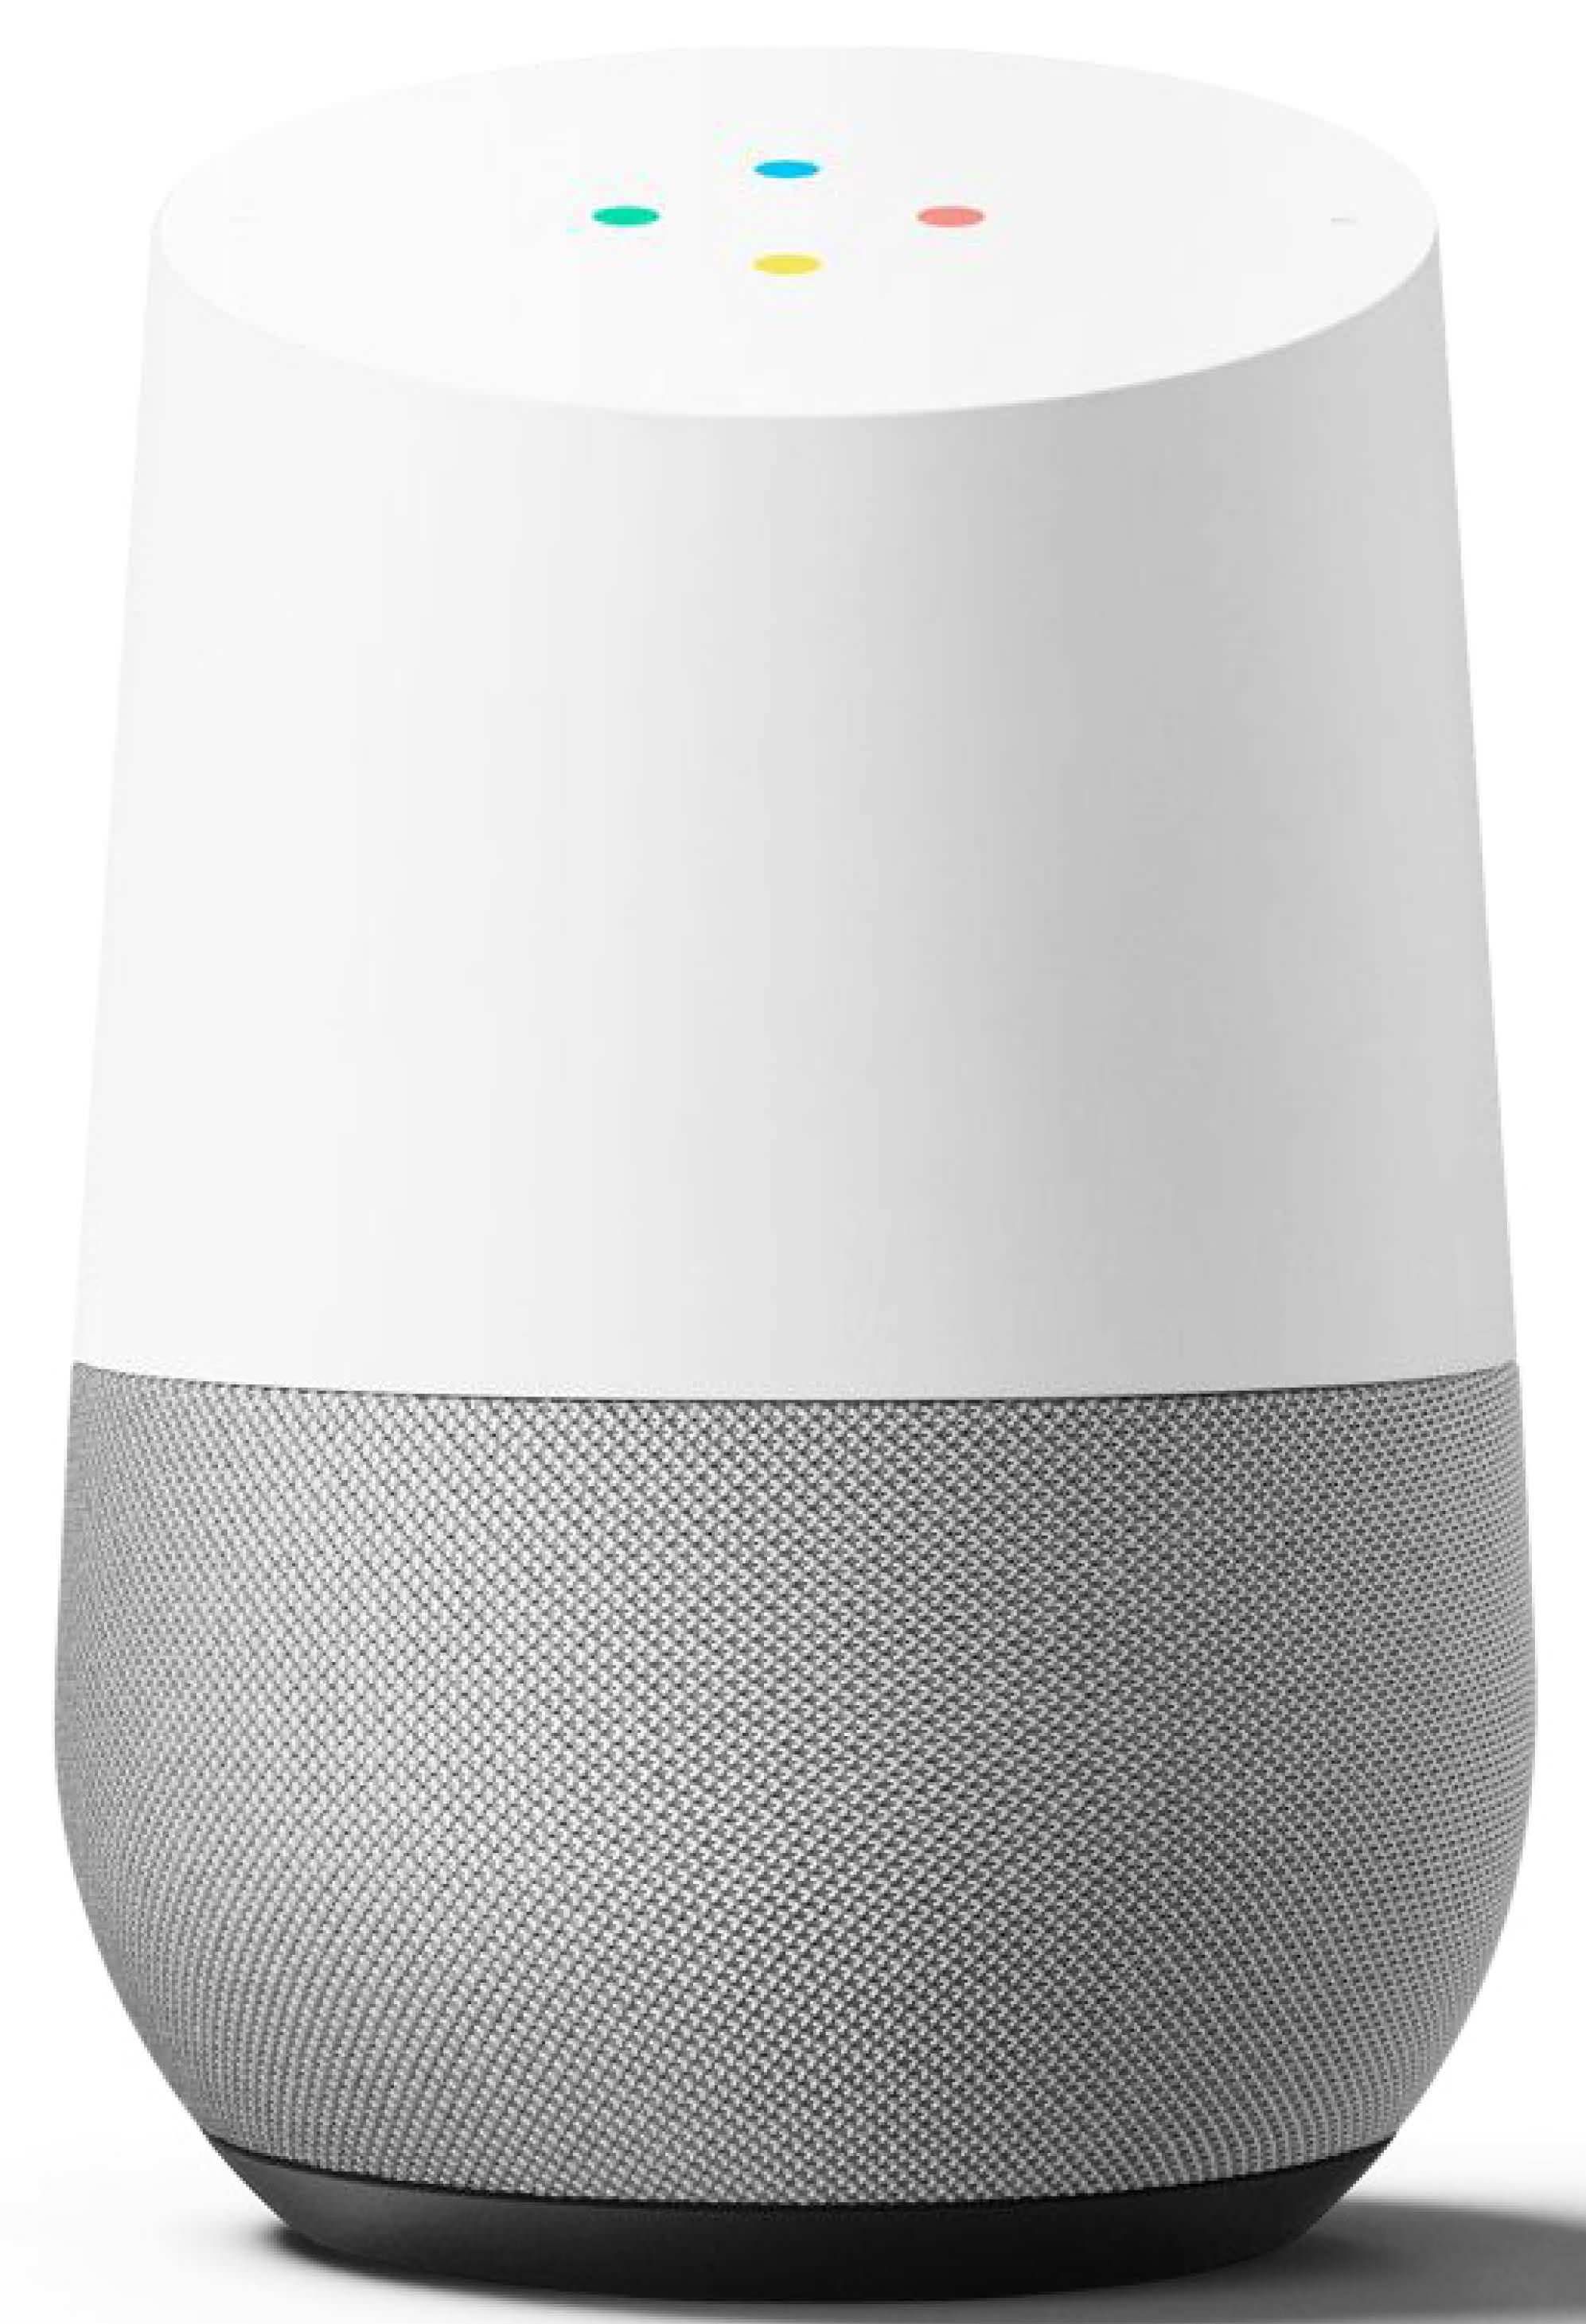 'OK Google' Wireless Speaker Is Just OK